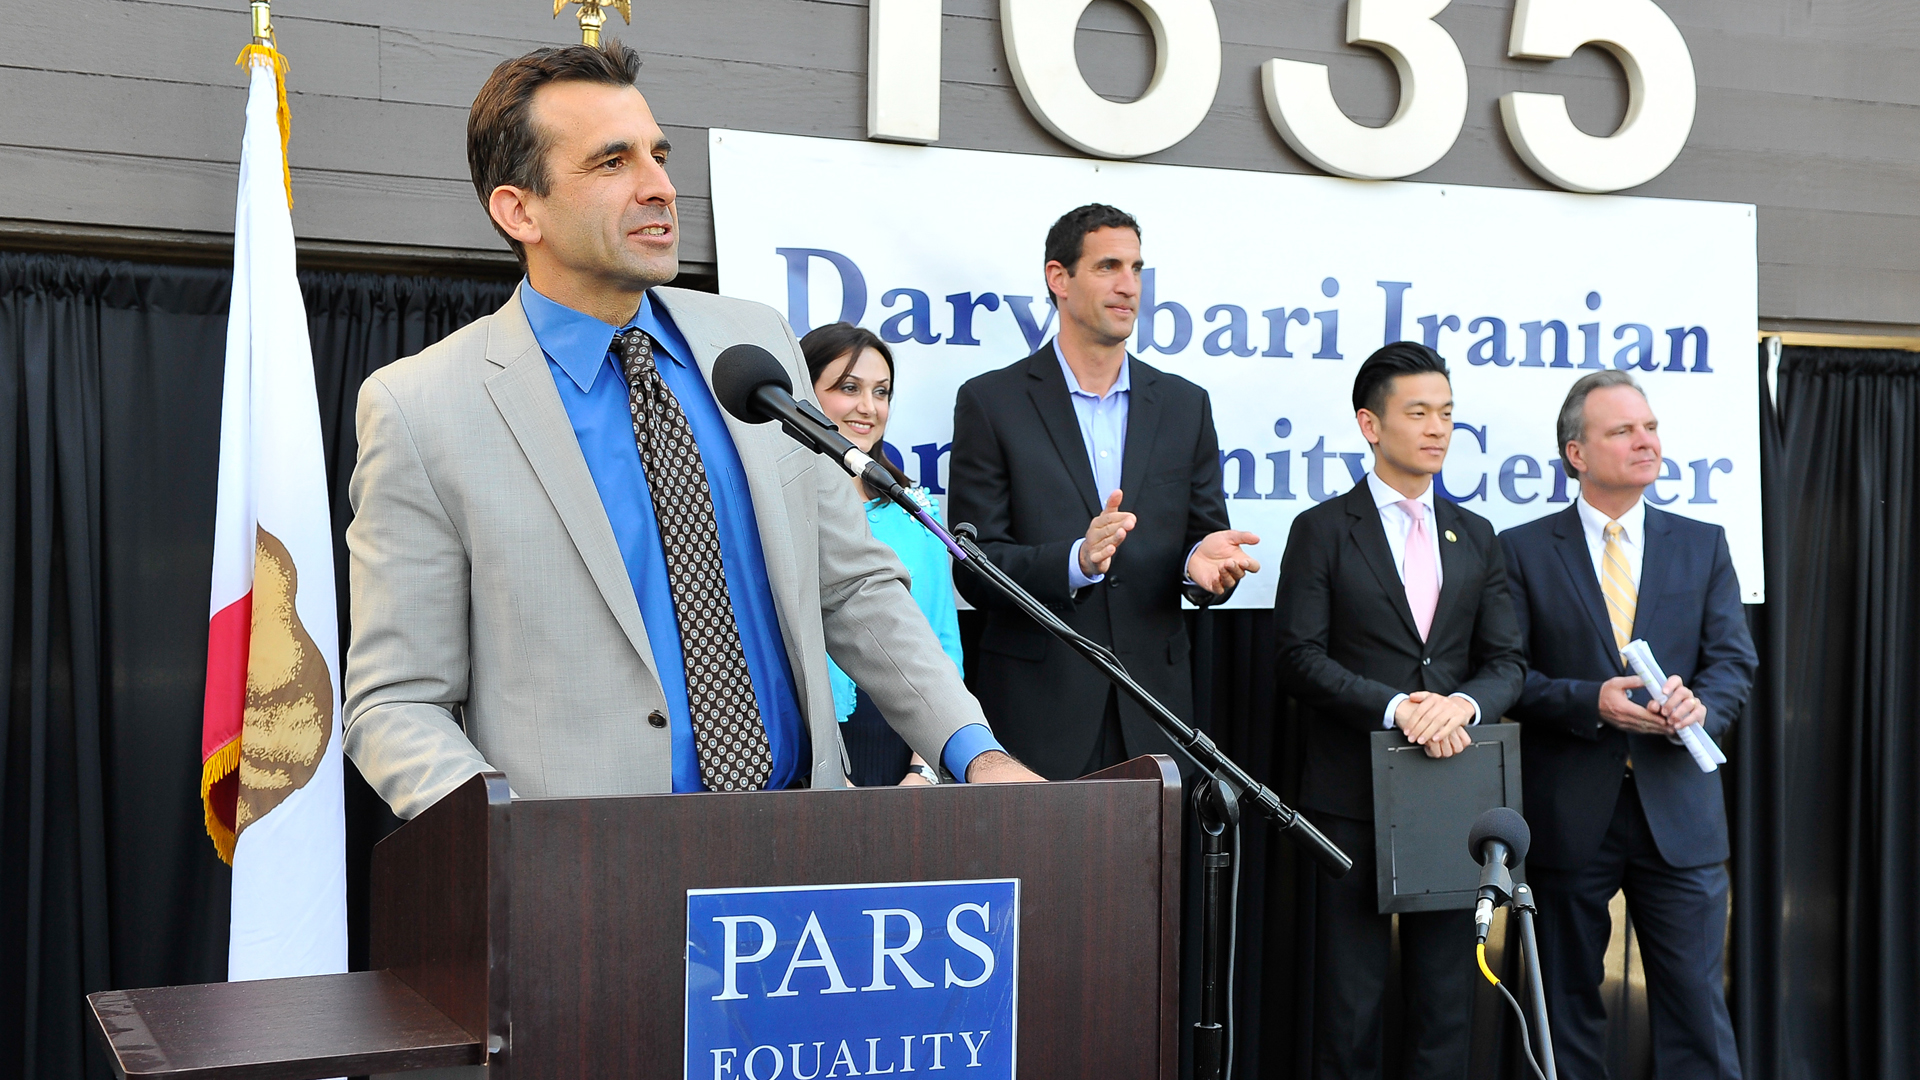 Mayor Sam Liccardo speaks at the Pars Equality Center's Daryabari Iranian Community Center Opening on April 16, 2015 in San Jose. (Photo by Steve Jennings/Getty Images for PARS EQUALITY CENTER)